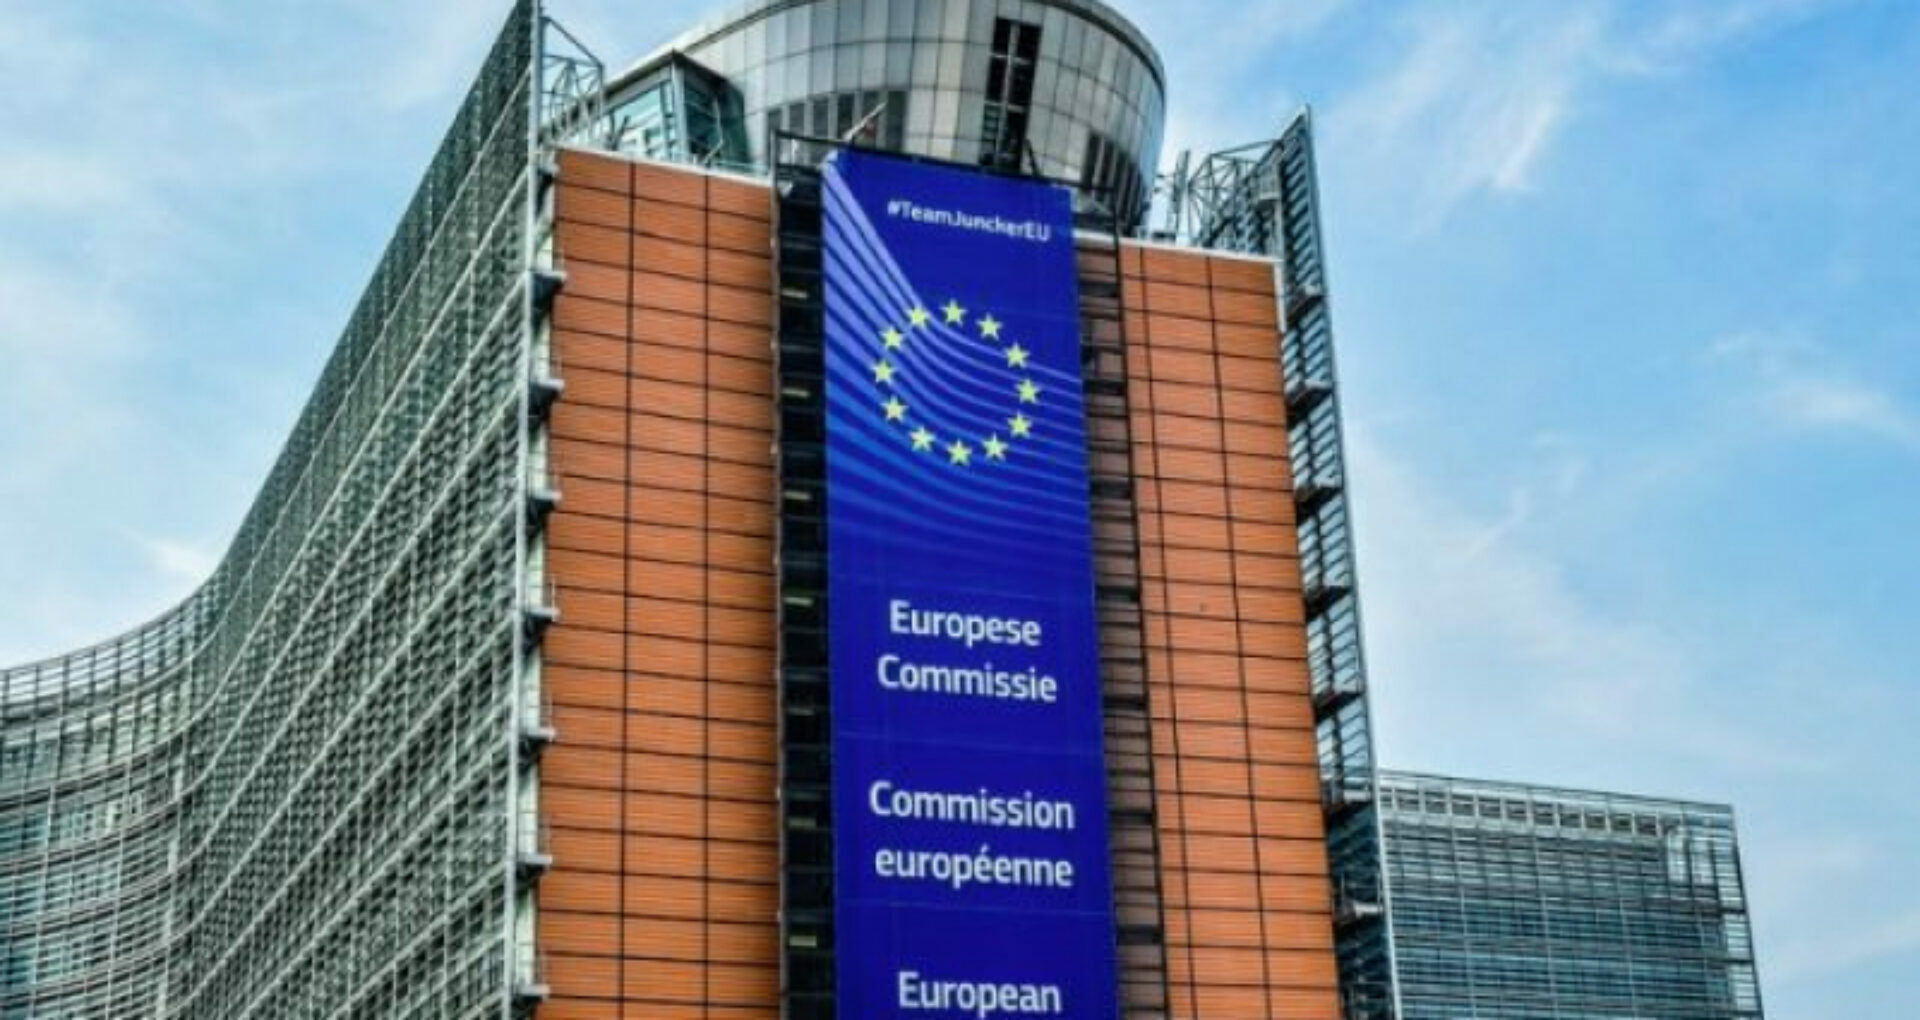 The European Commission Has Assessed How Moldova Has Met the Visa Liberalization Requirements